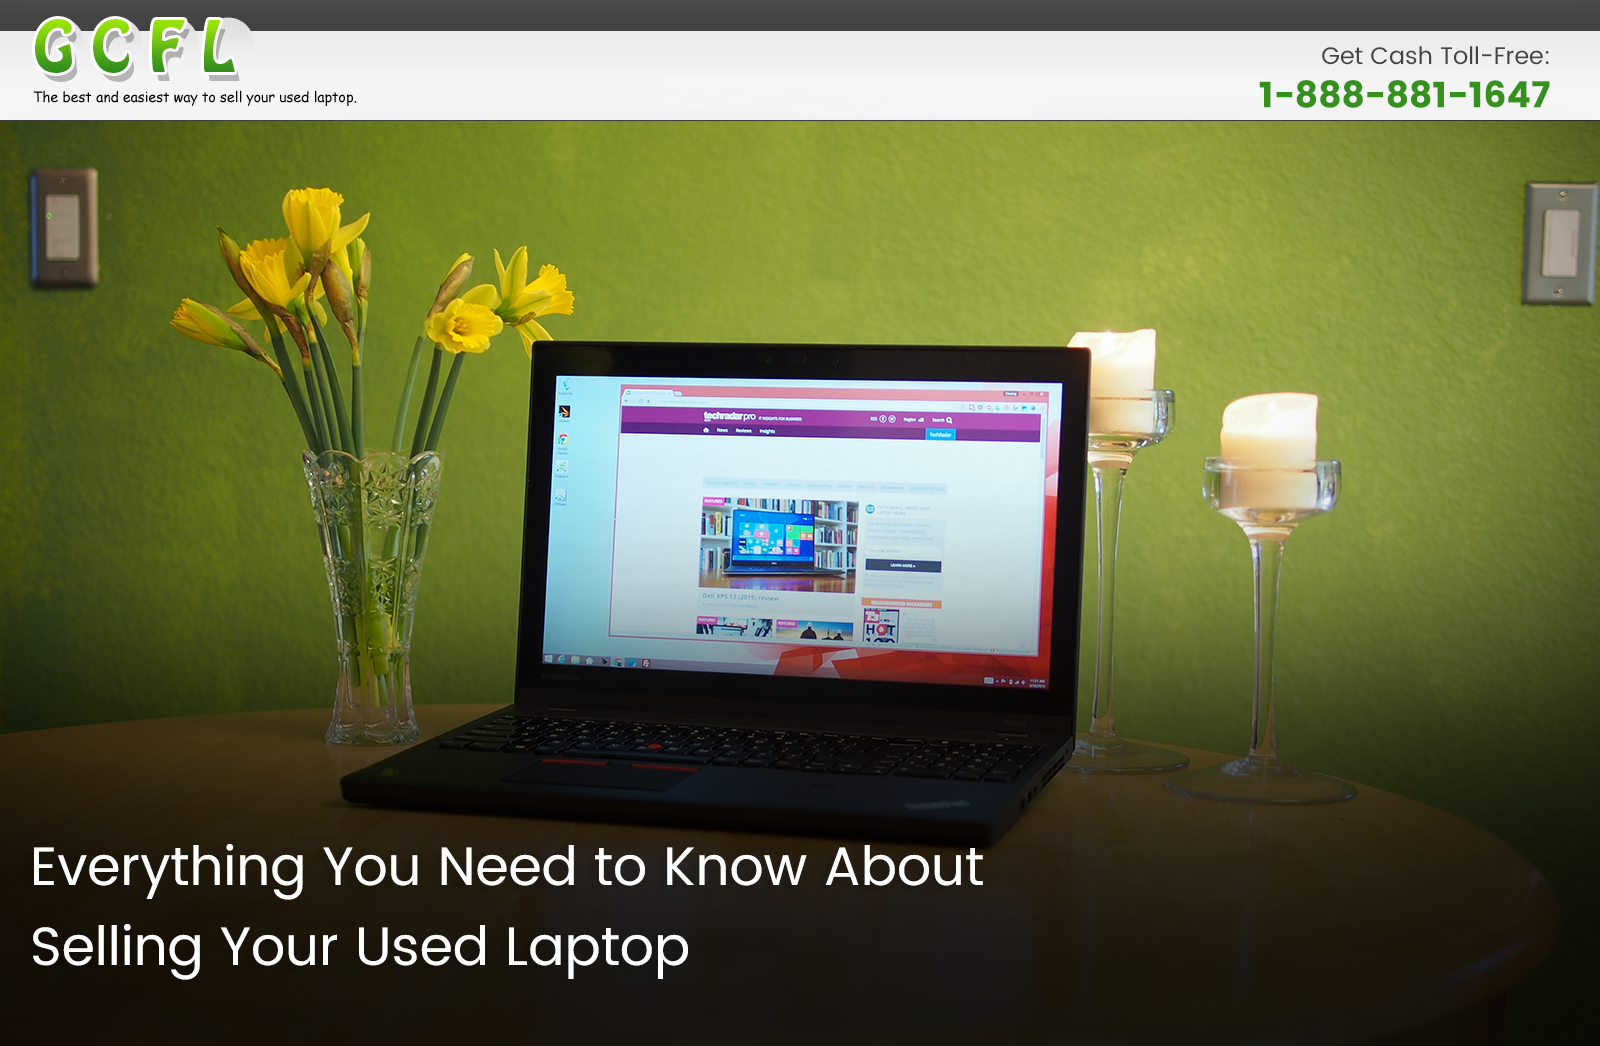 Everything You Need to Know About Selling Your Used Laptop